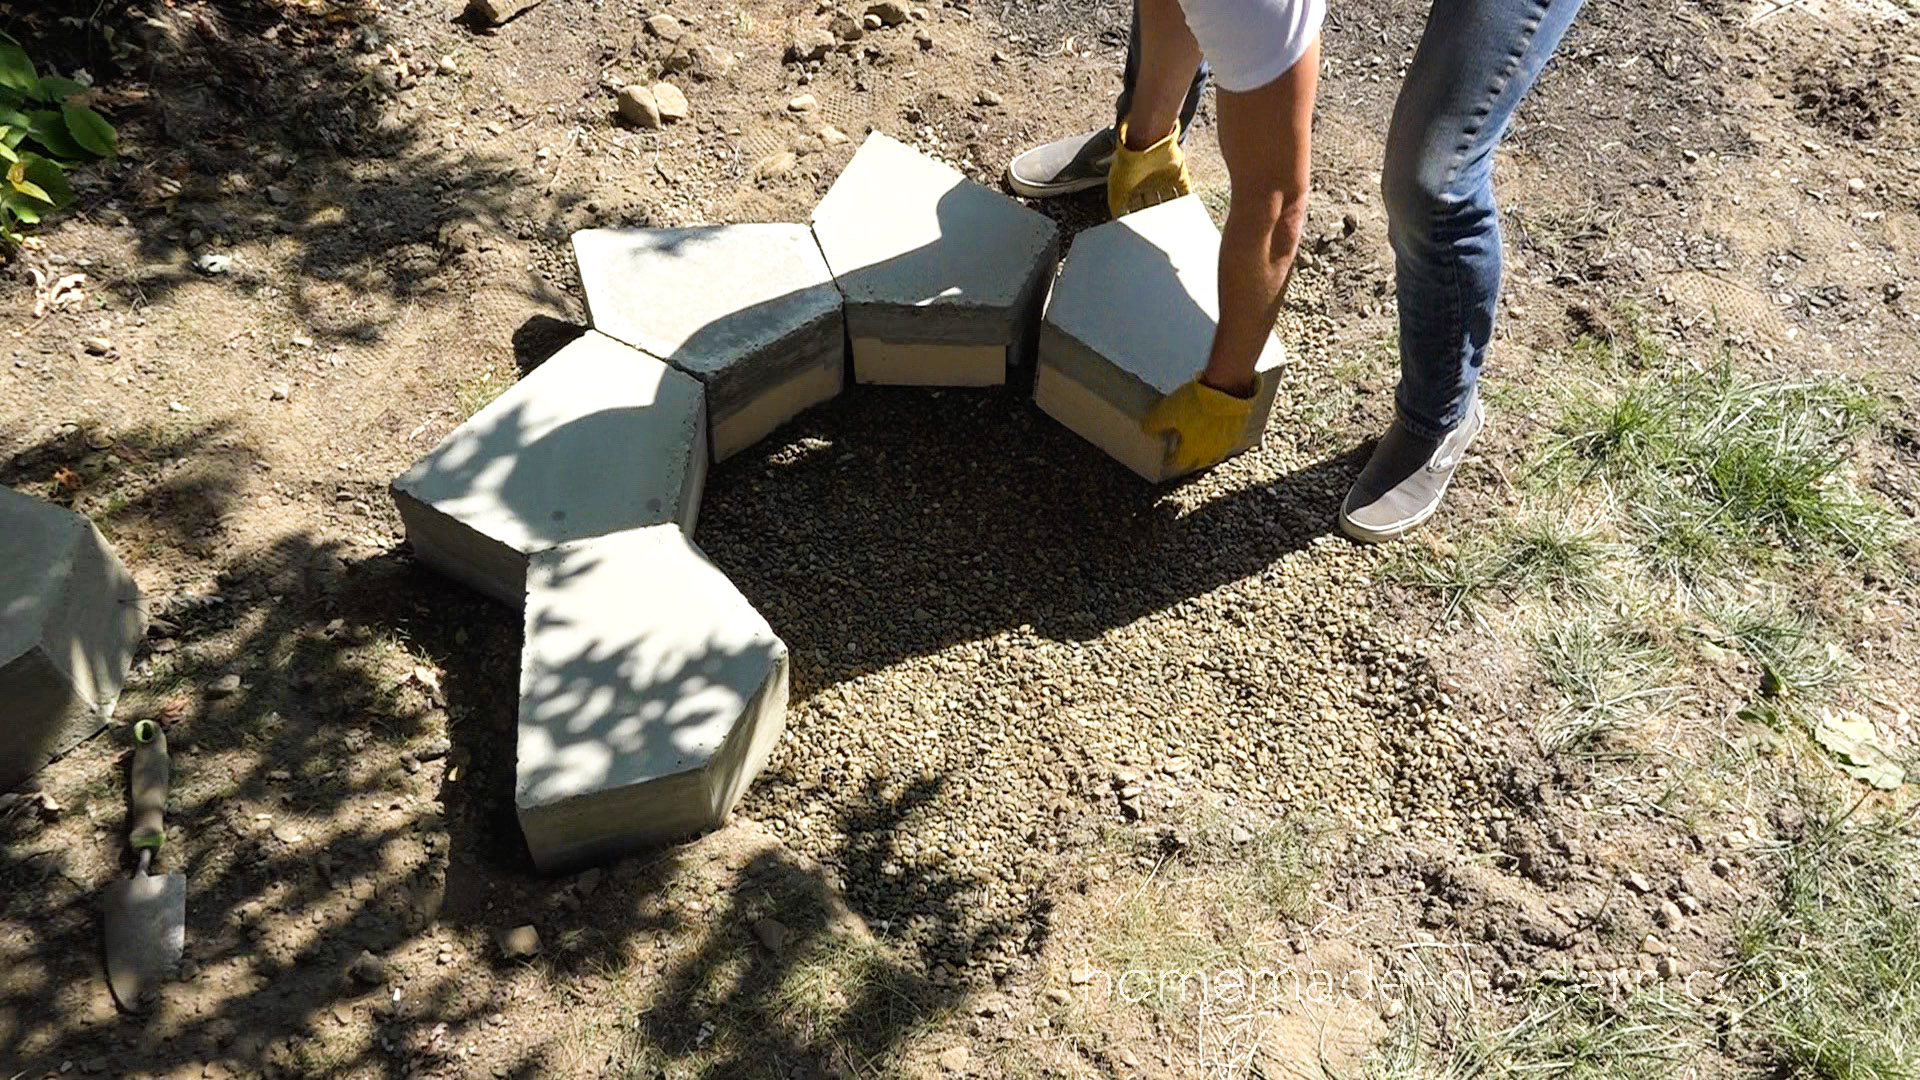 cncfirepit 9b Top Result 50 Awesome Easy to Build Fire Pit Pic 2018 Hiw6